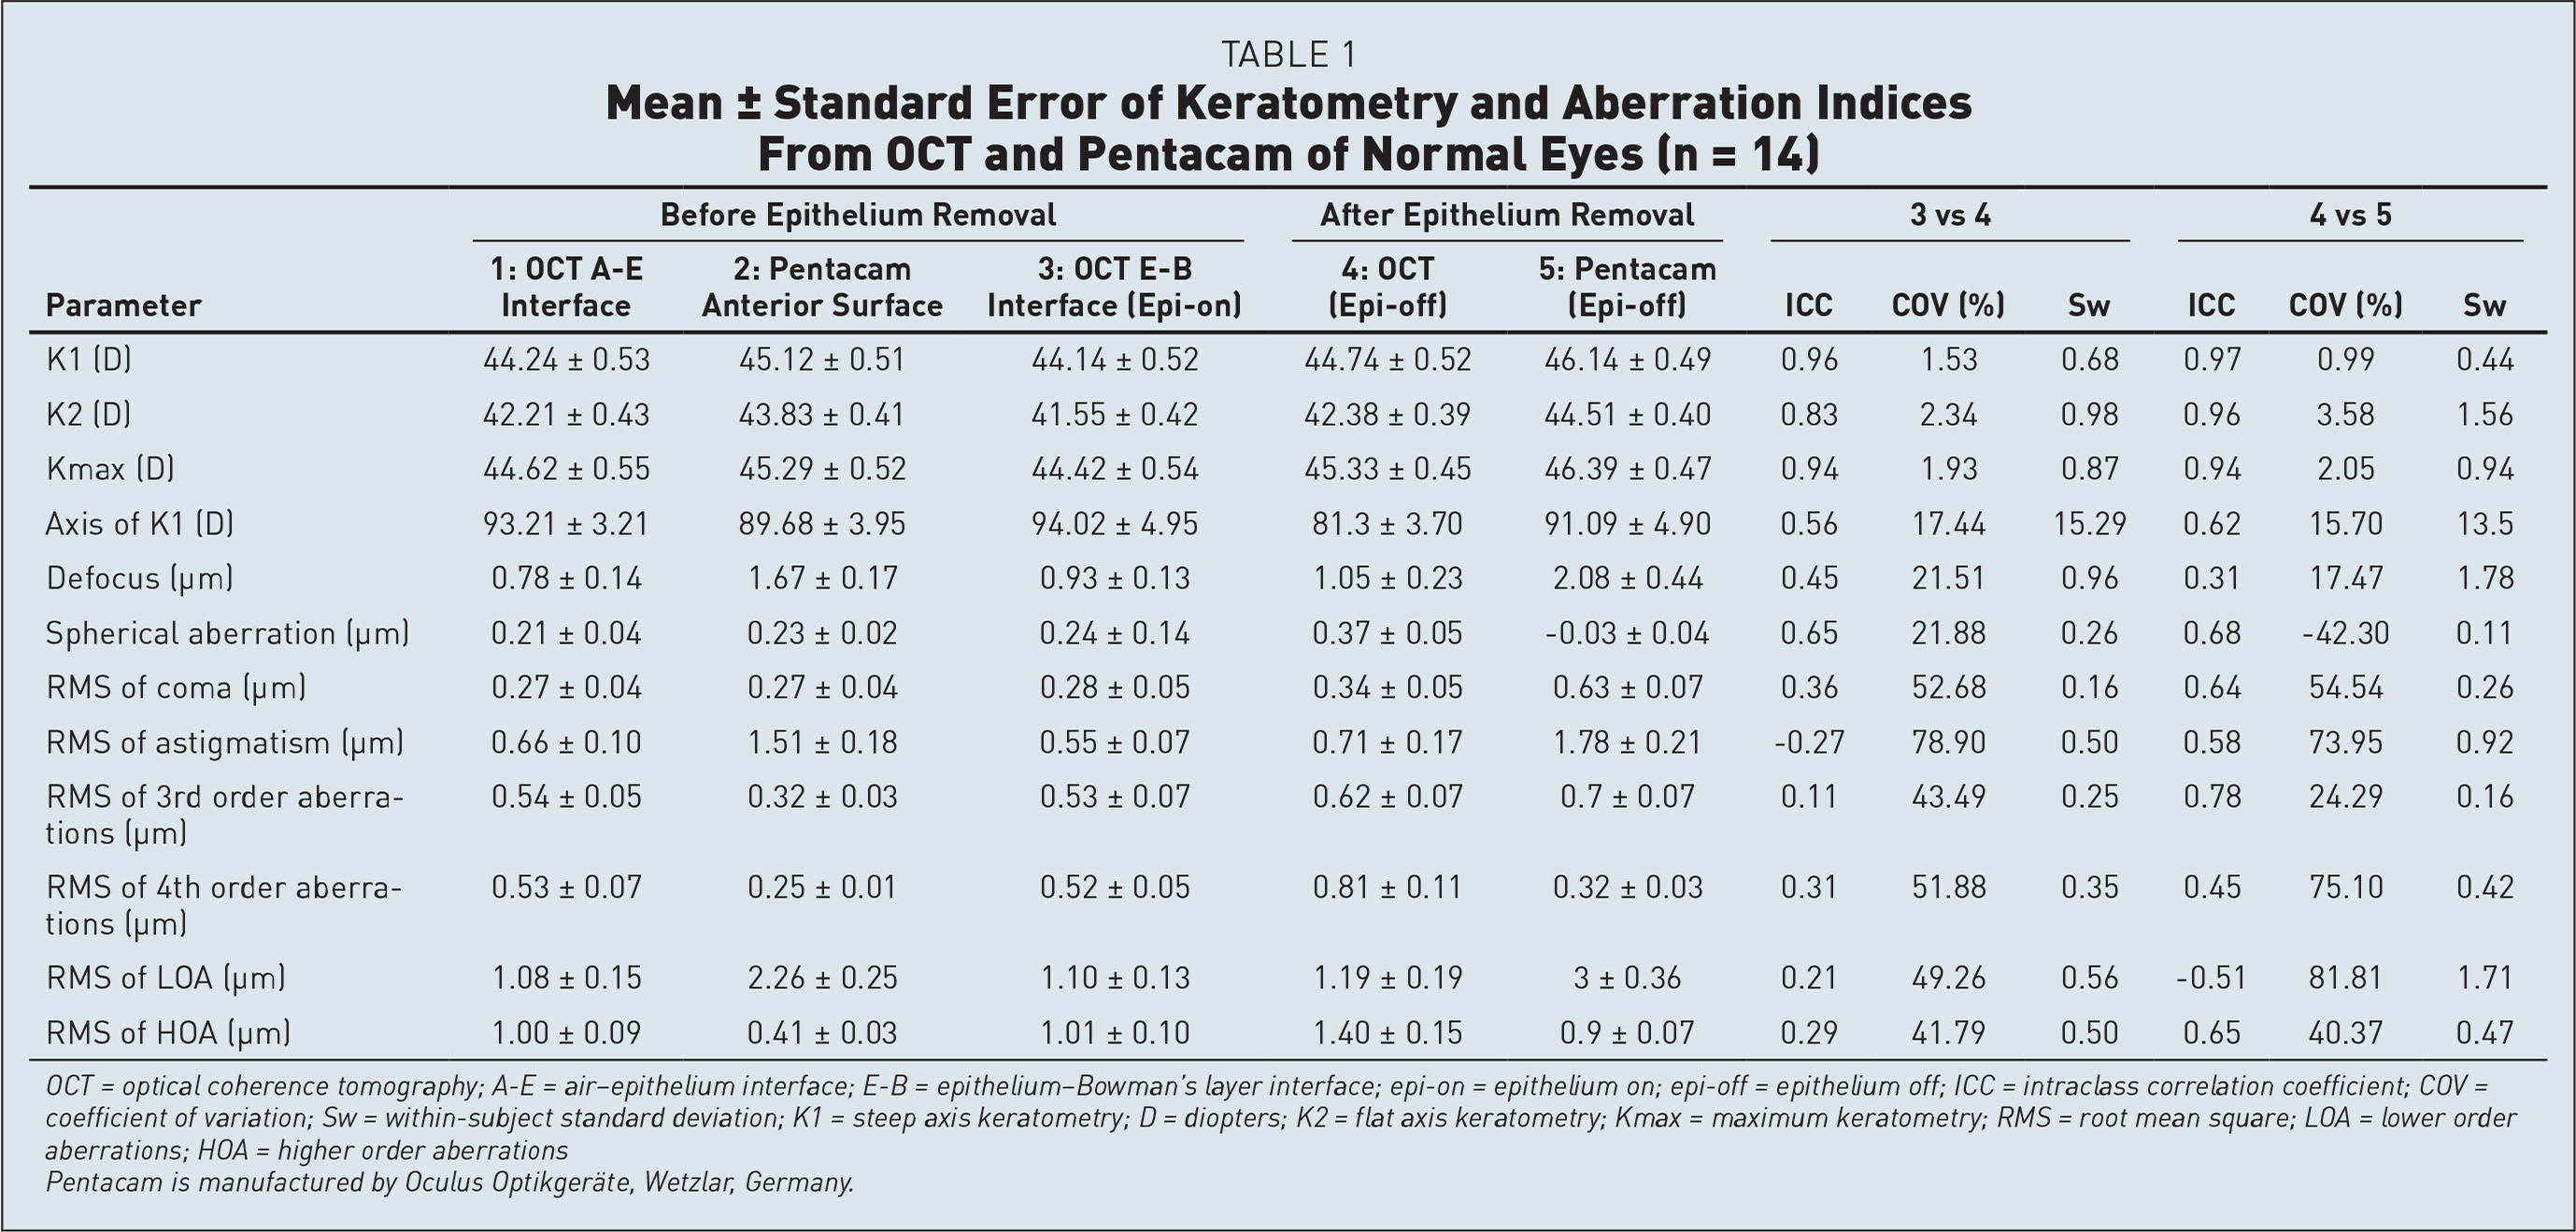 Mean ± Standard Error of Keratometry and Aberration Indices From OCT and Pentacam of Normal Eyes (n = 14)